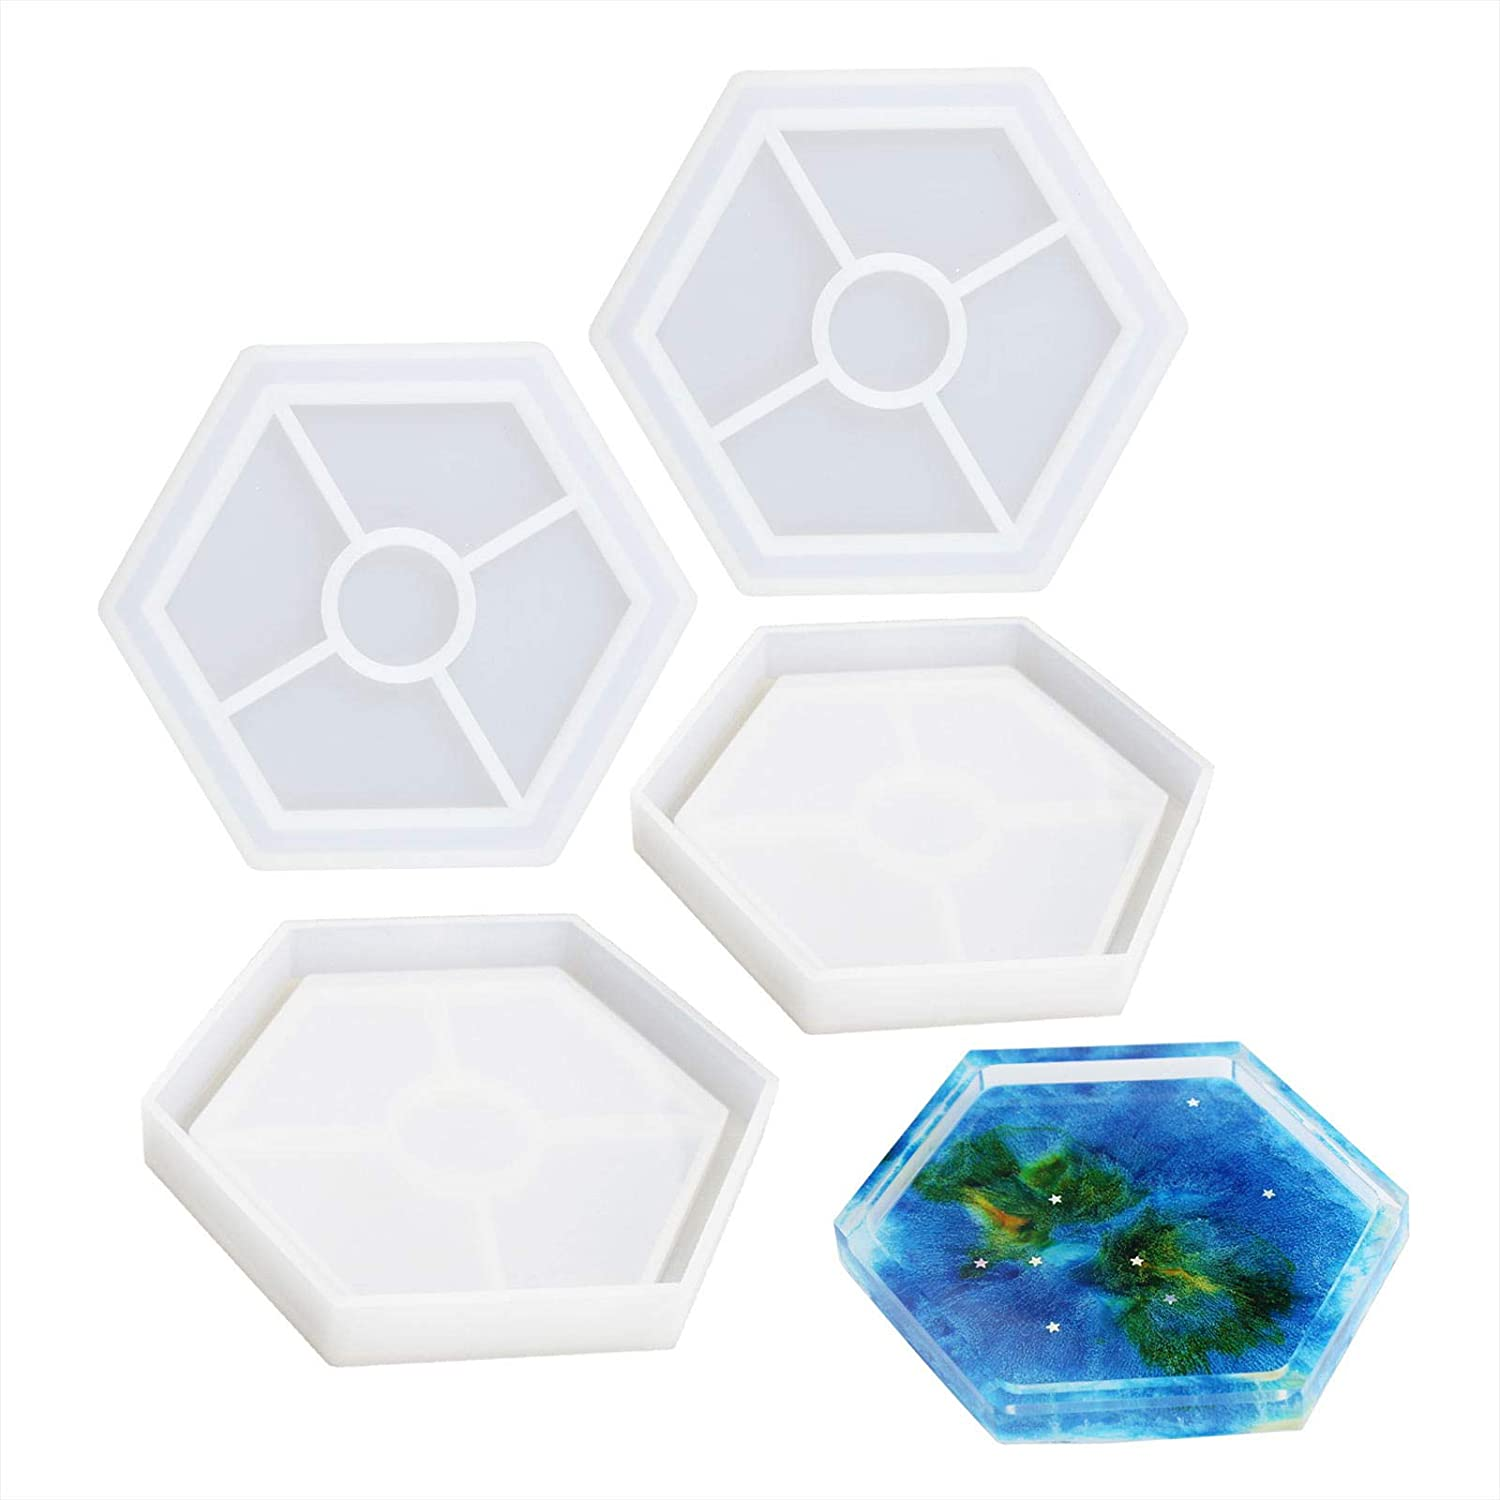 Cement and Polymer Clay 4 PCS DIY Hexagon Coaster Silicone Mold Silicone Resin Mold Clear Epoxy Molds for Casting with Resin Concrete